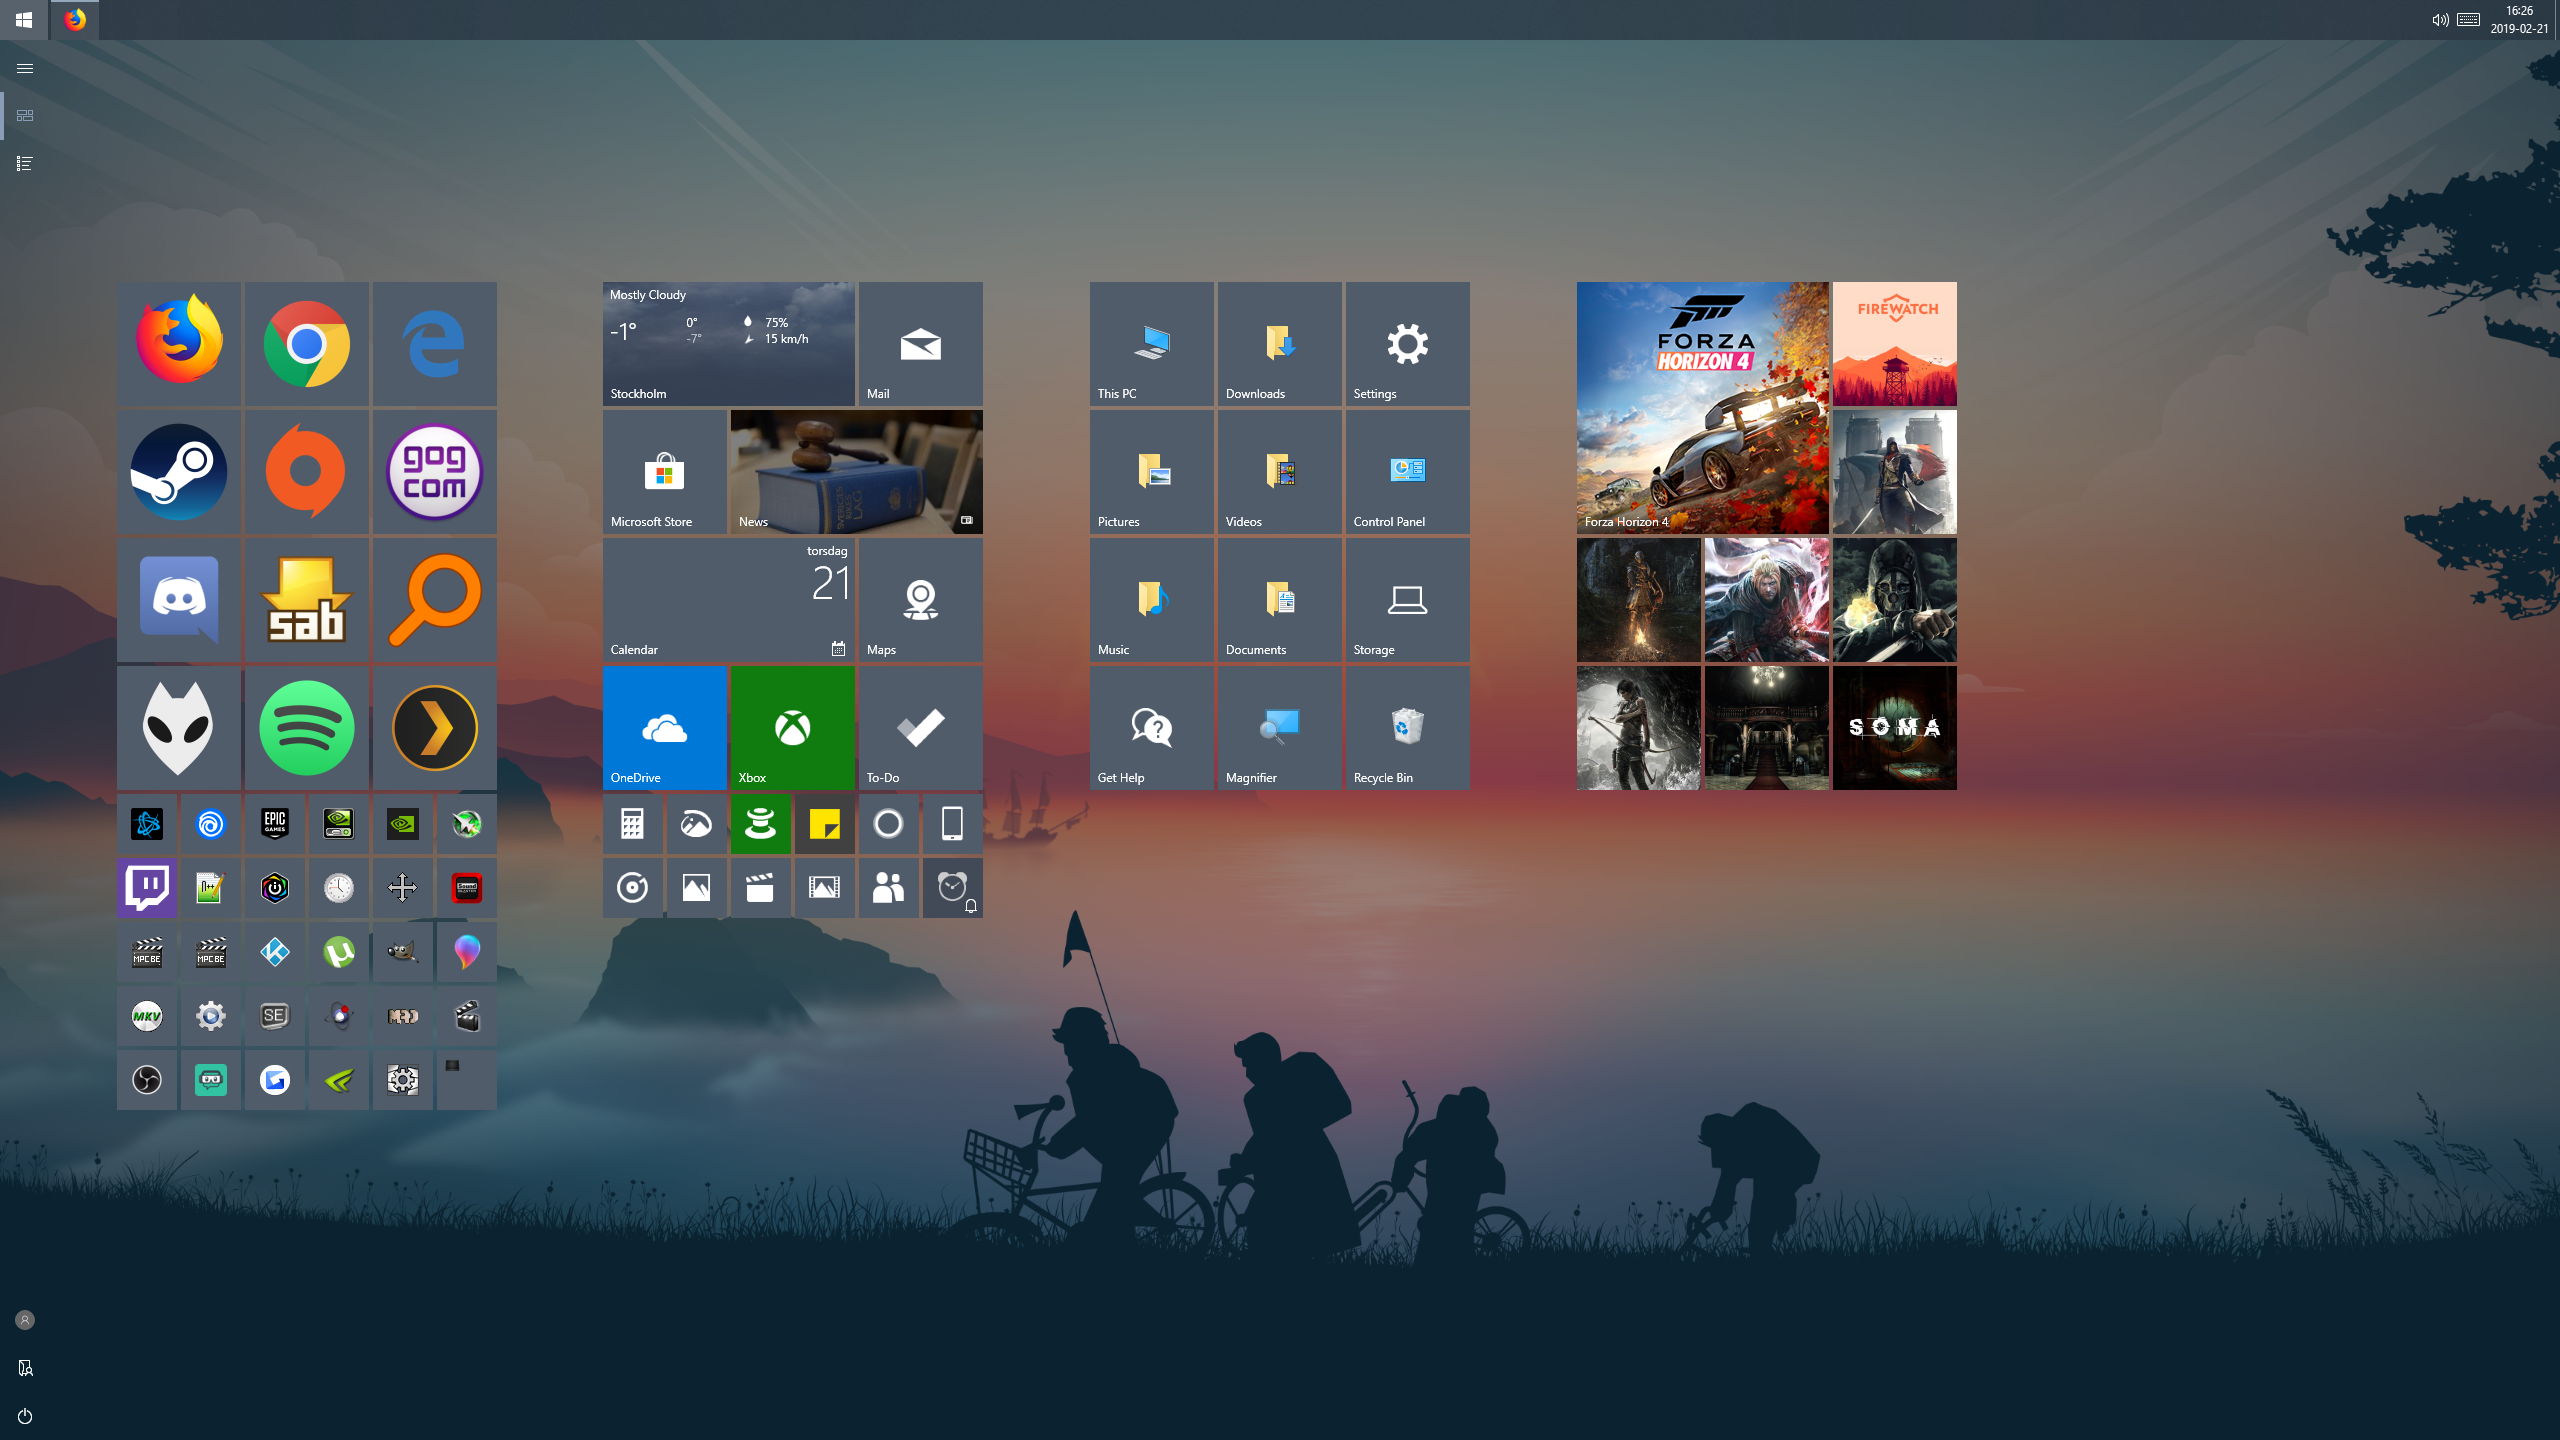 With all these PC game launchers, has anybody else gone back